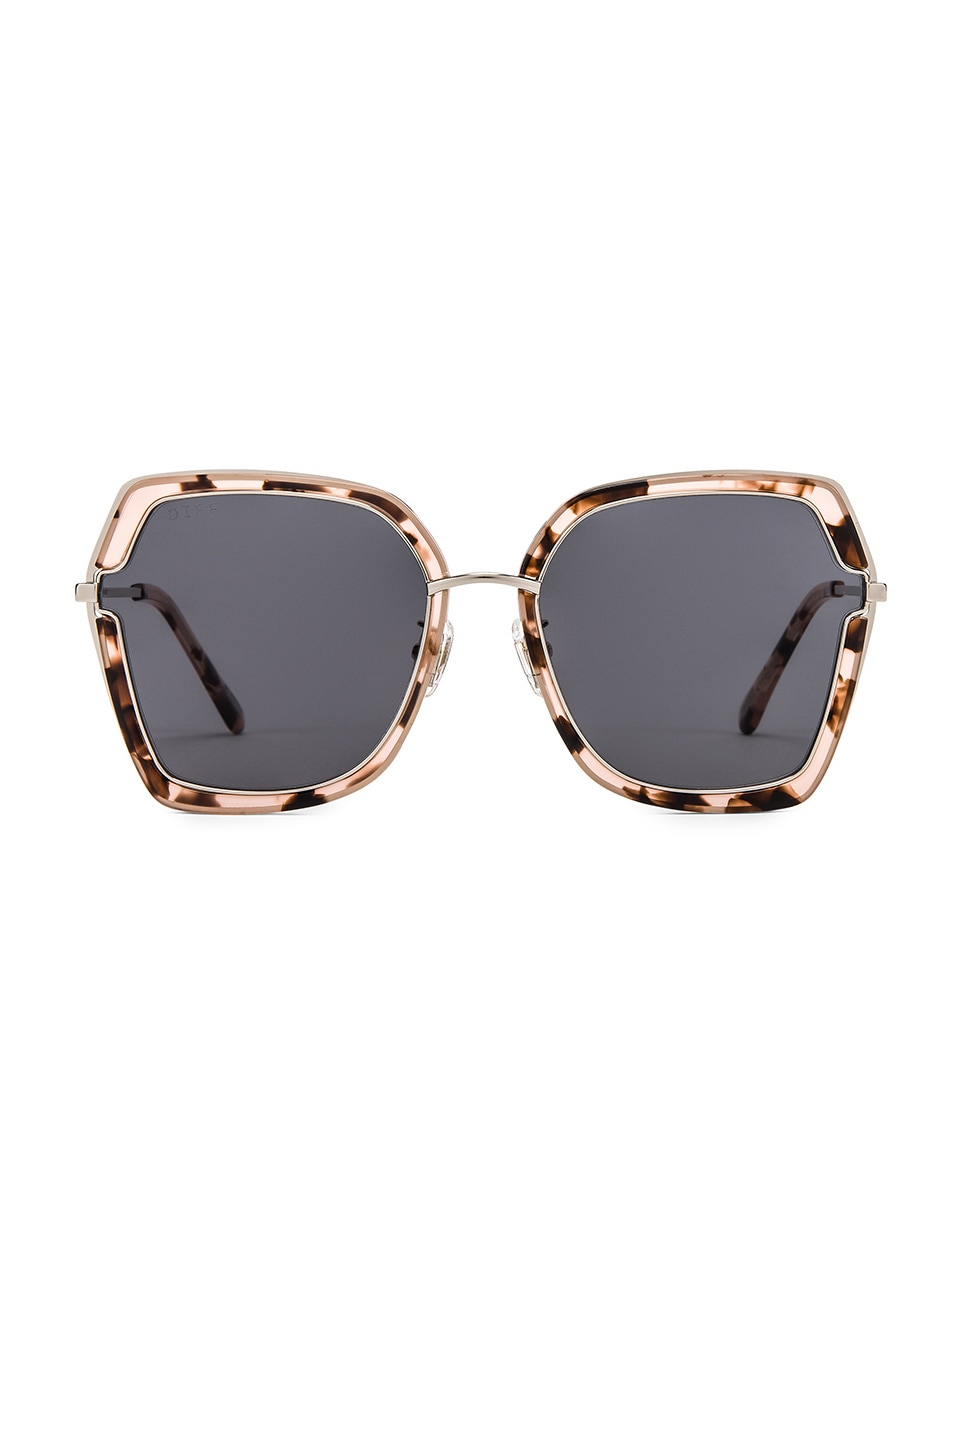 DIFF EYEWEAR Dakota Sunglasses in Silver & Himalayan Tortoise & Grey